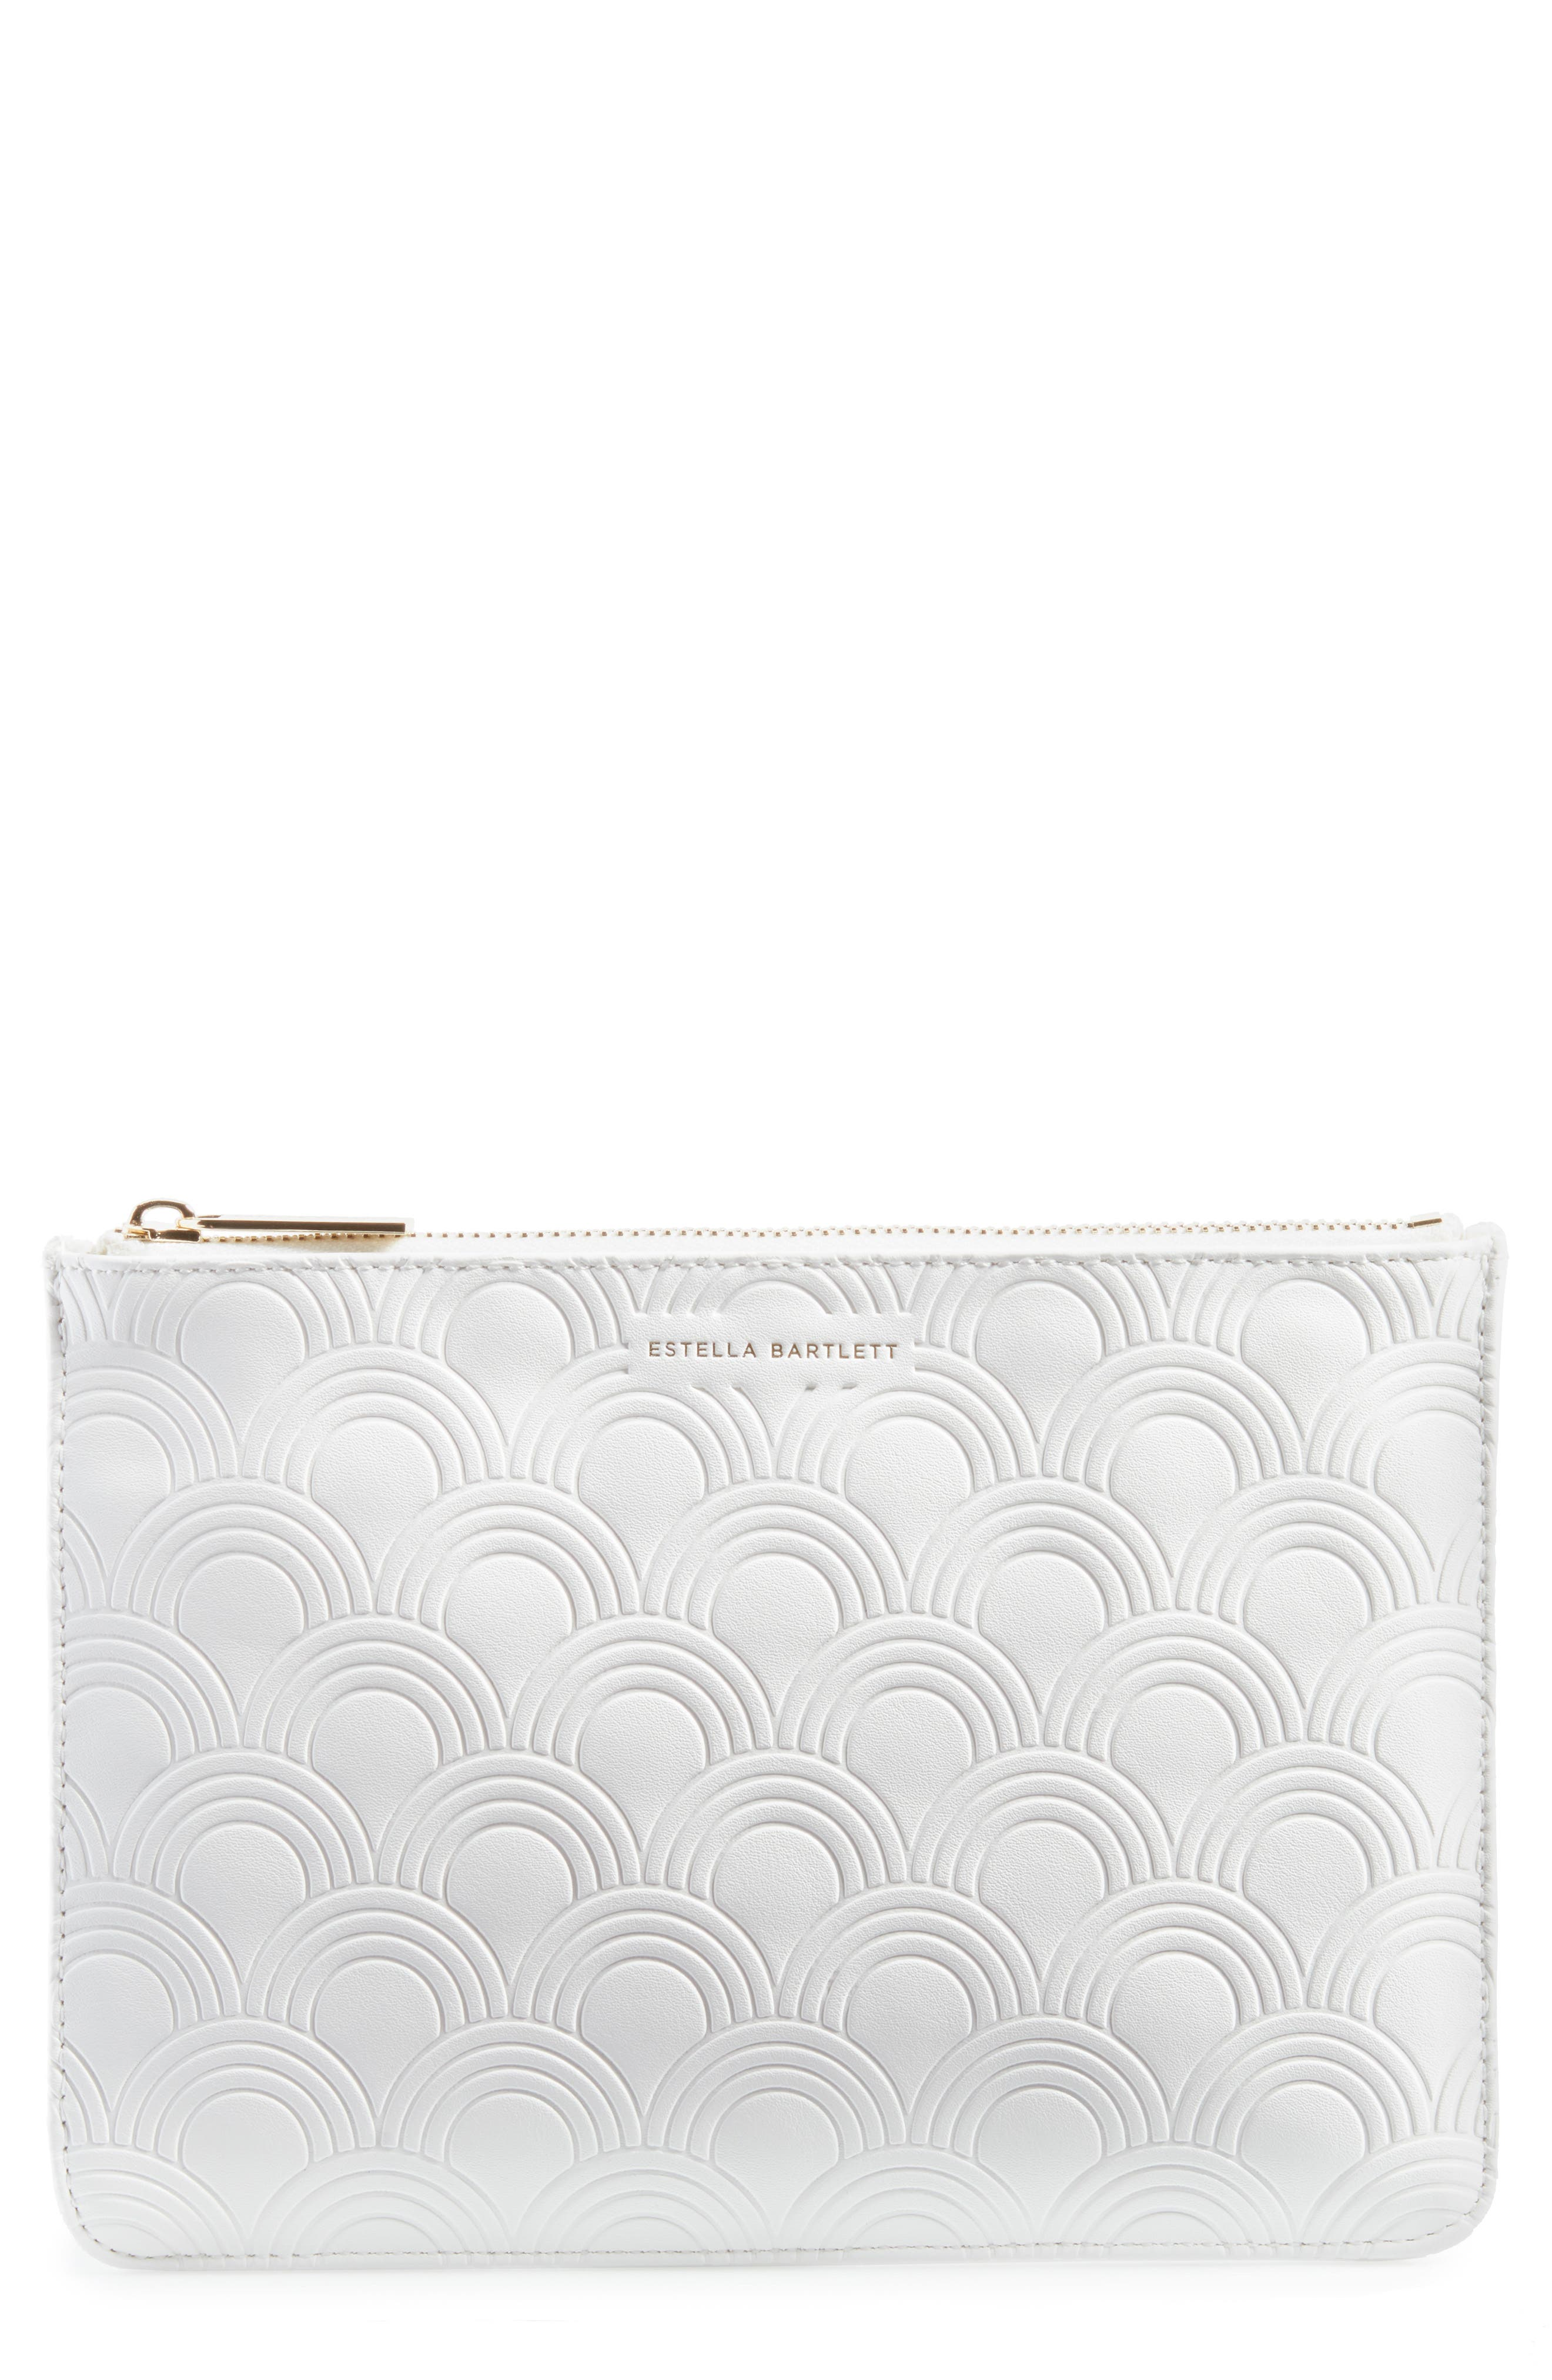 Medium Embossed Faux Leather Pouch,                             Main thumbnail 1, color,                             900